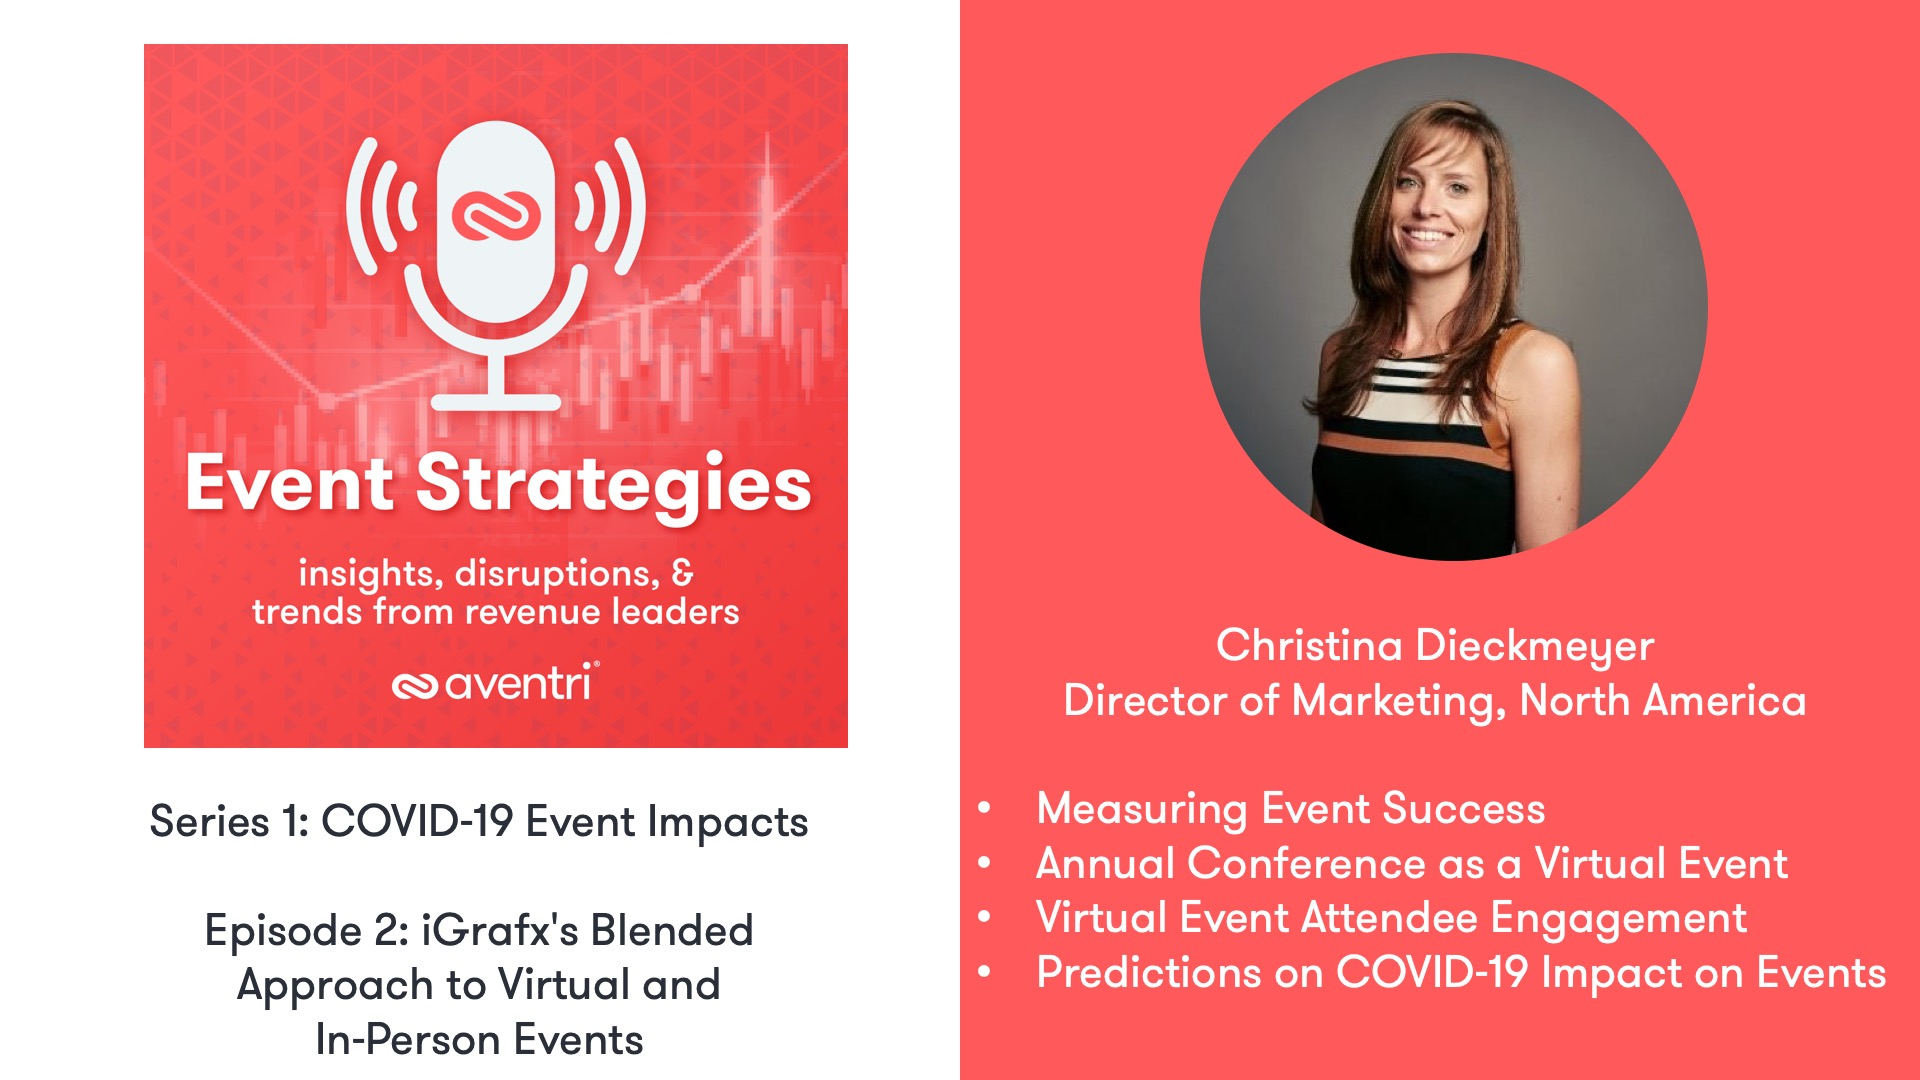 Aventri Event Strategies Podcast Series ep. 2 with Christina Dieckmeyer, the Director of Marketing for North America at iGrafx.